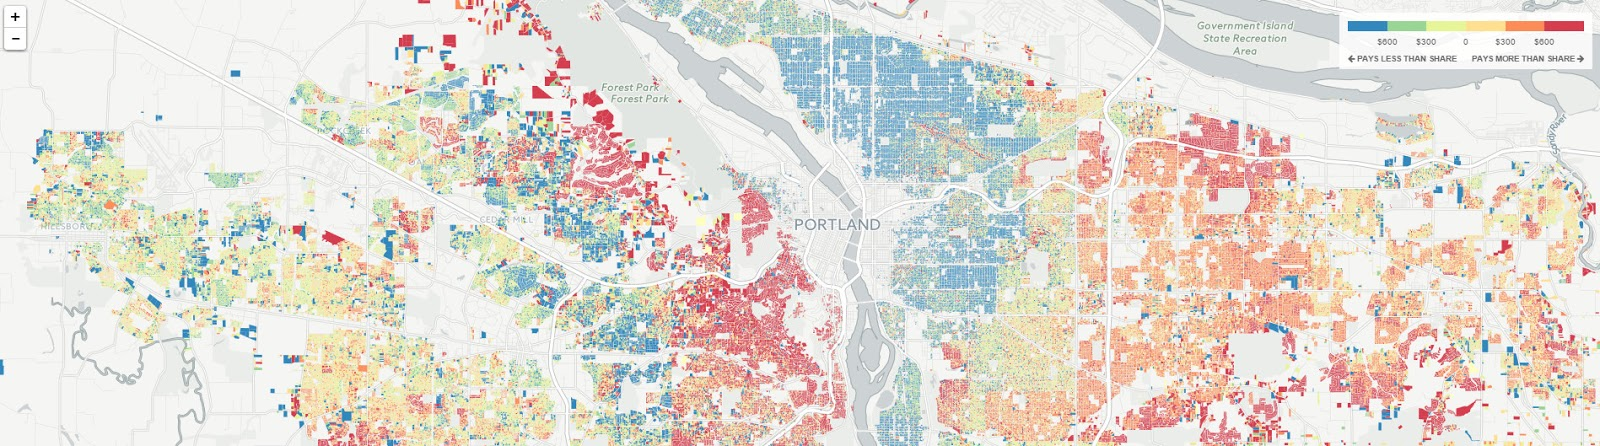 The property tax map